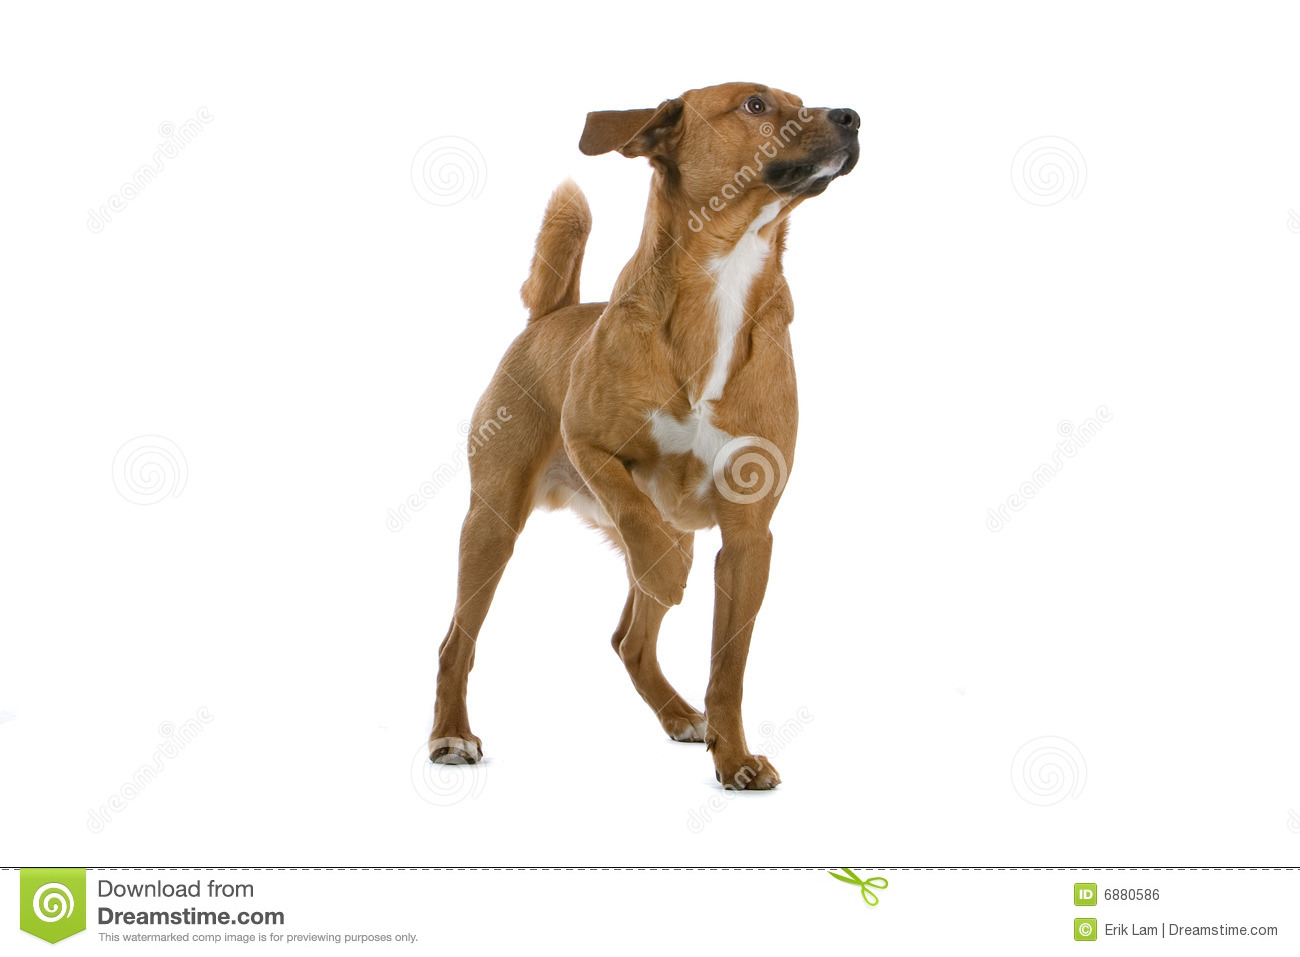 Austrian Pinscher dog